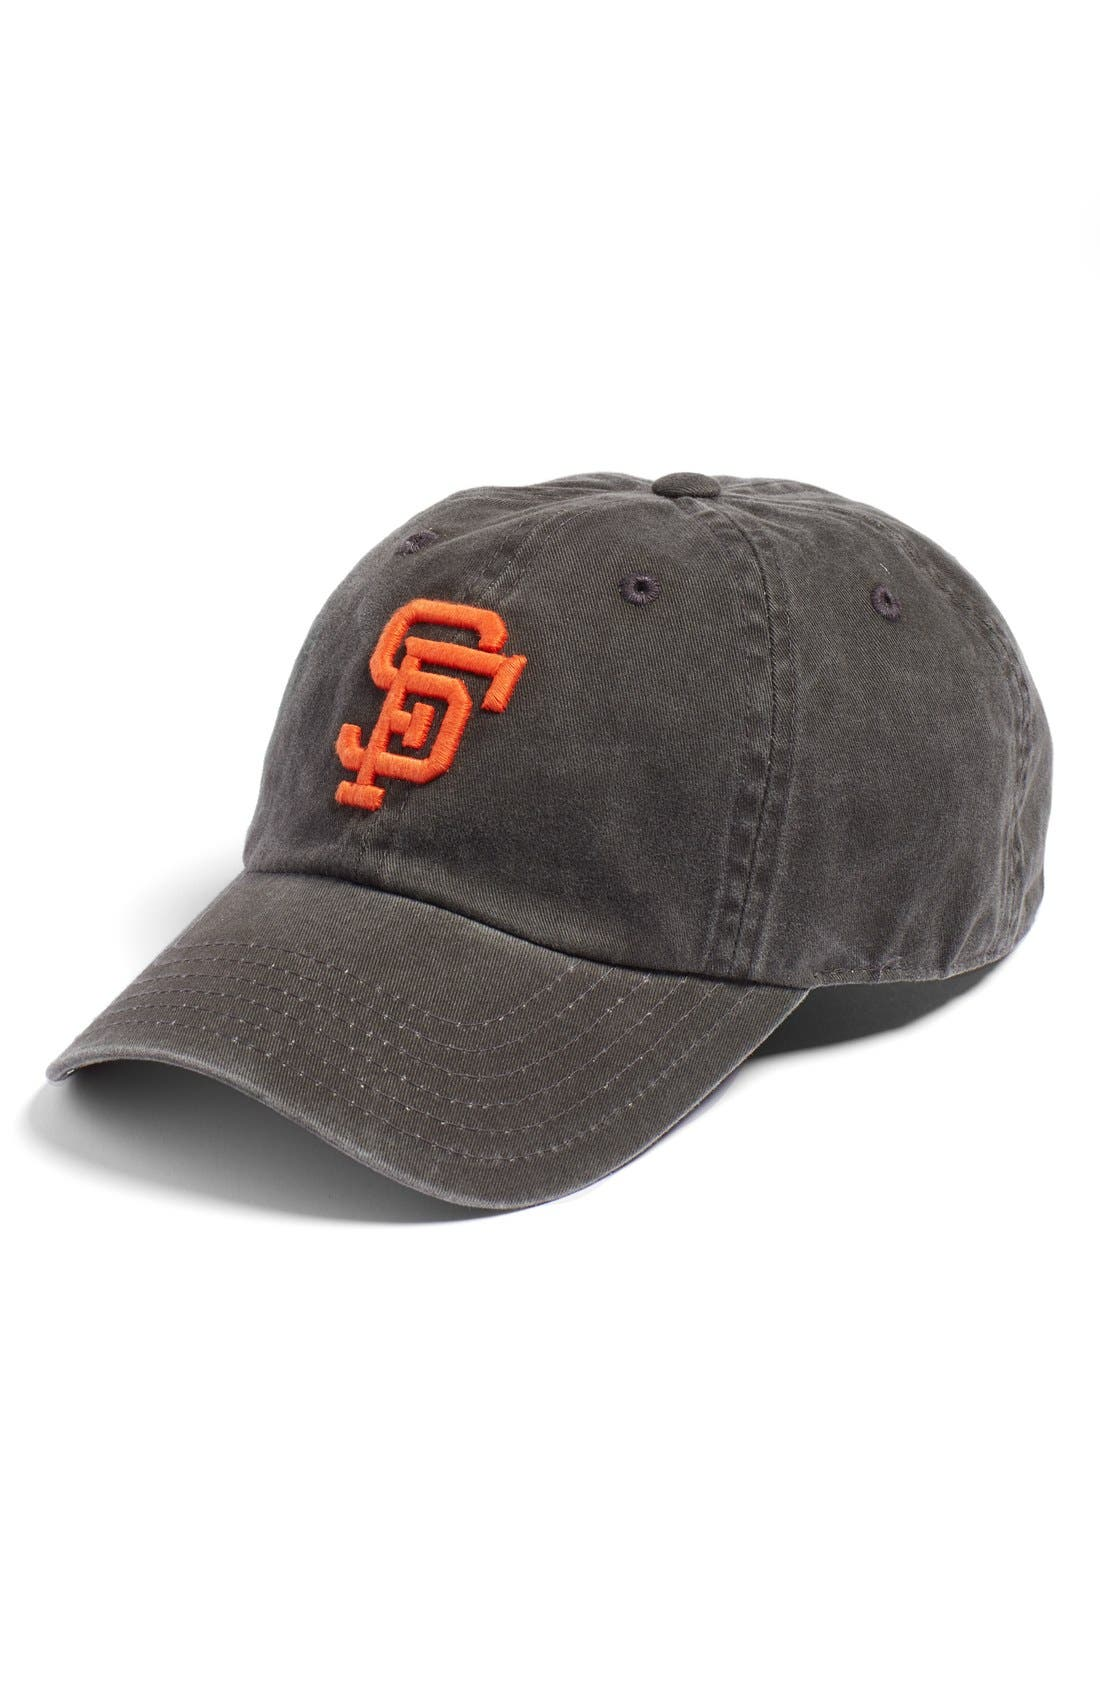 American Needle New Raglan San Francisco Giants Baseball Cap